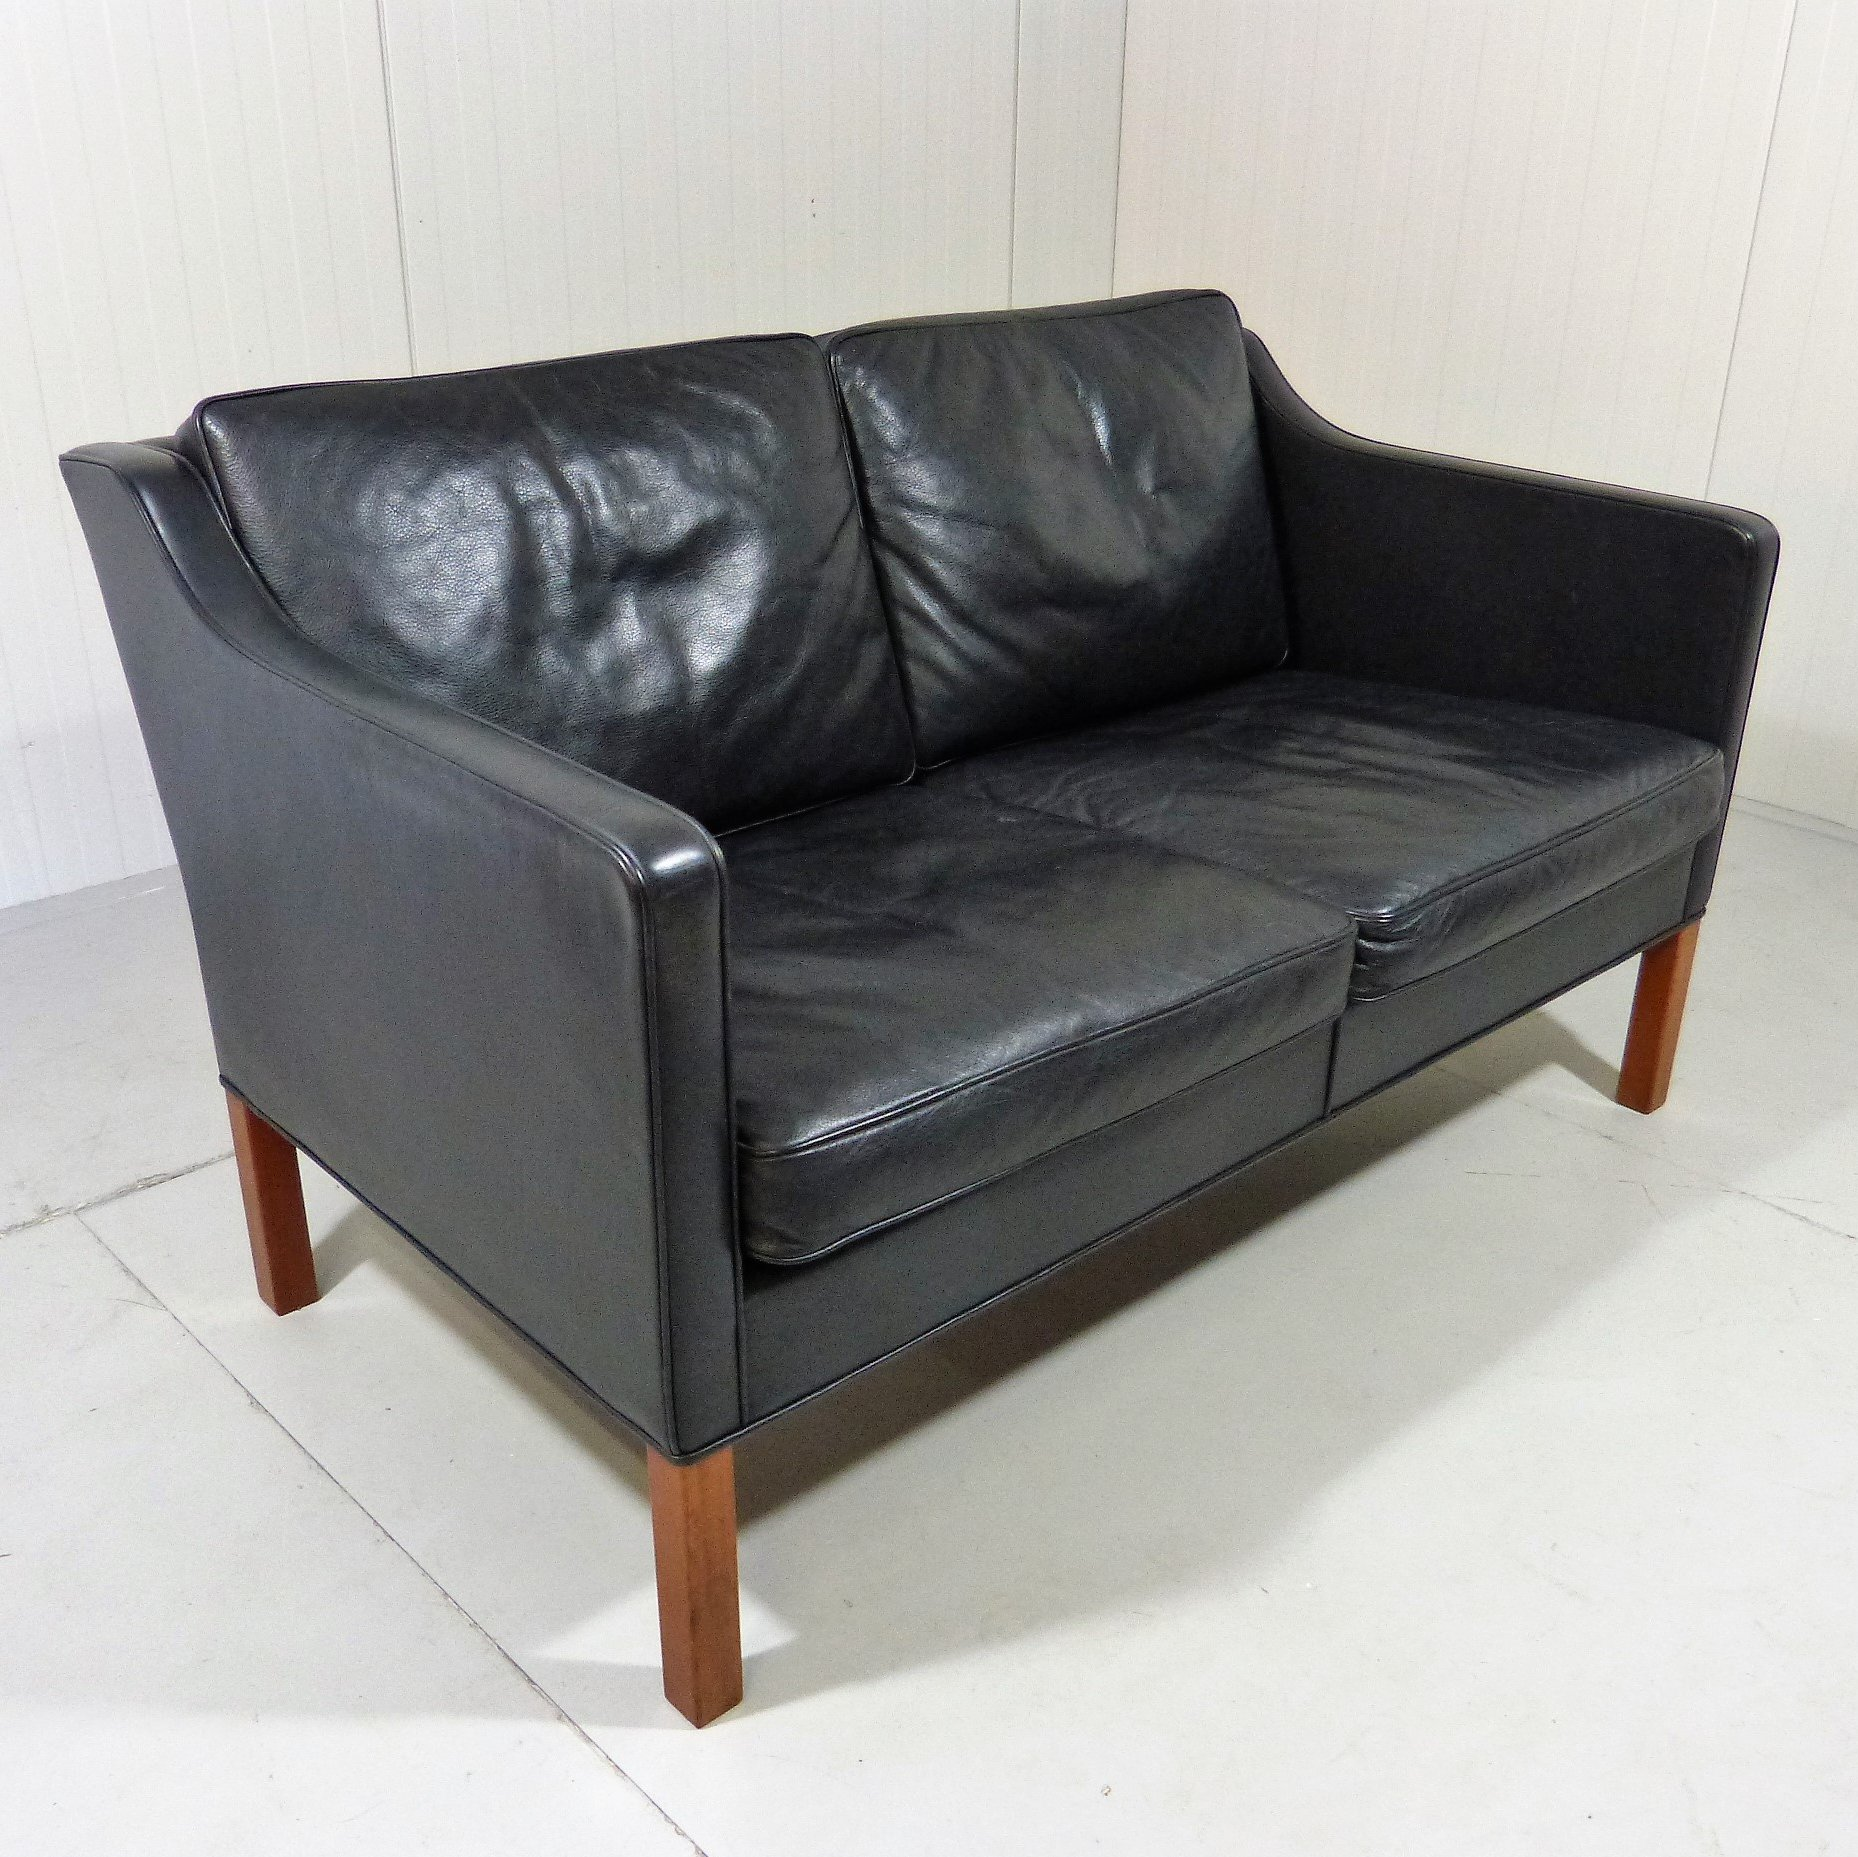 Picture of: Black Leather Sofa By Borge Mogensen For Fredericia Denmark 1970s 131065